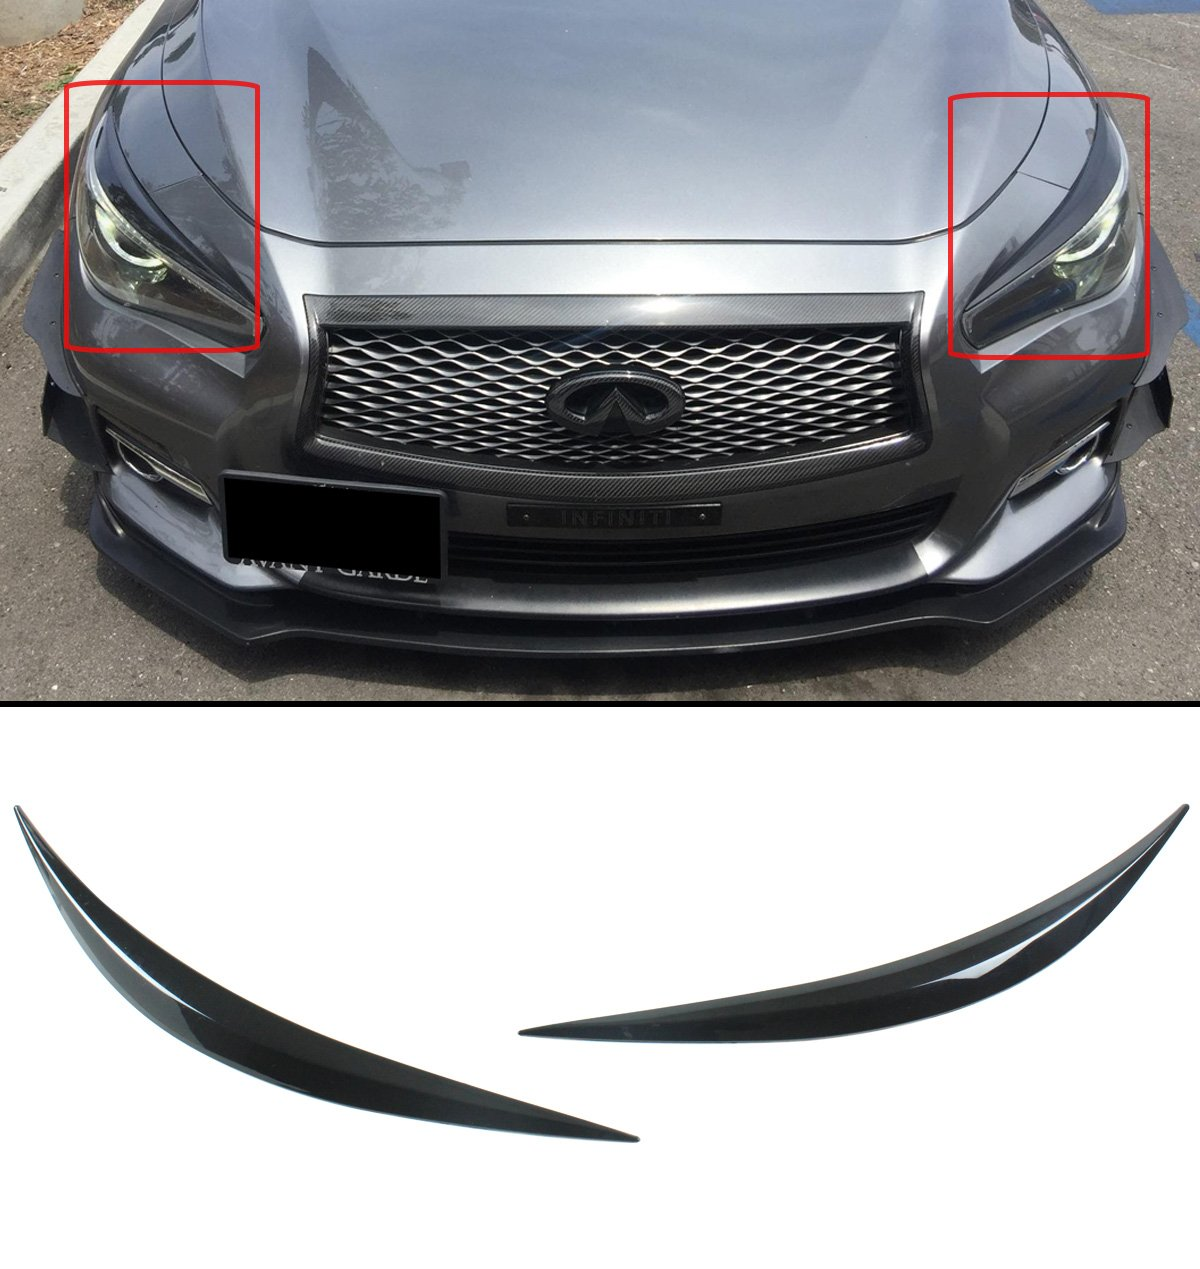 Cuztom Tuning for 2014-2017 Infiniti Q50 Glossy Black ABS Headlight Cover Eyelid Eyebrows